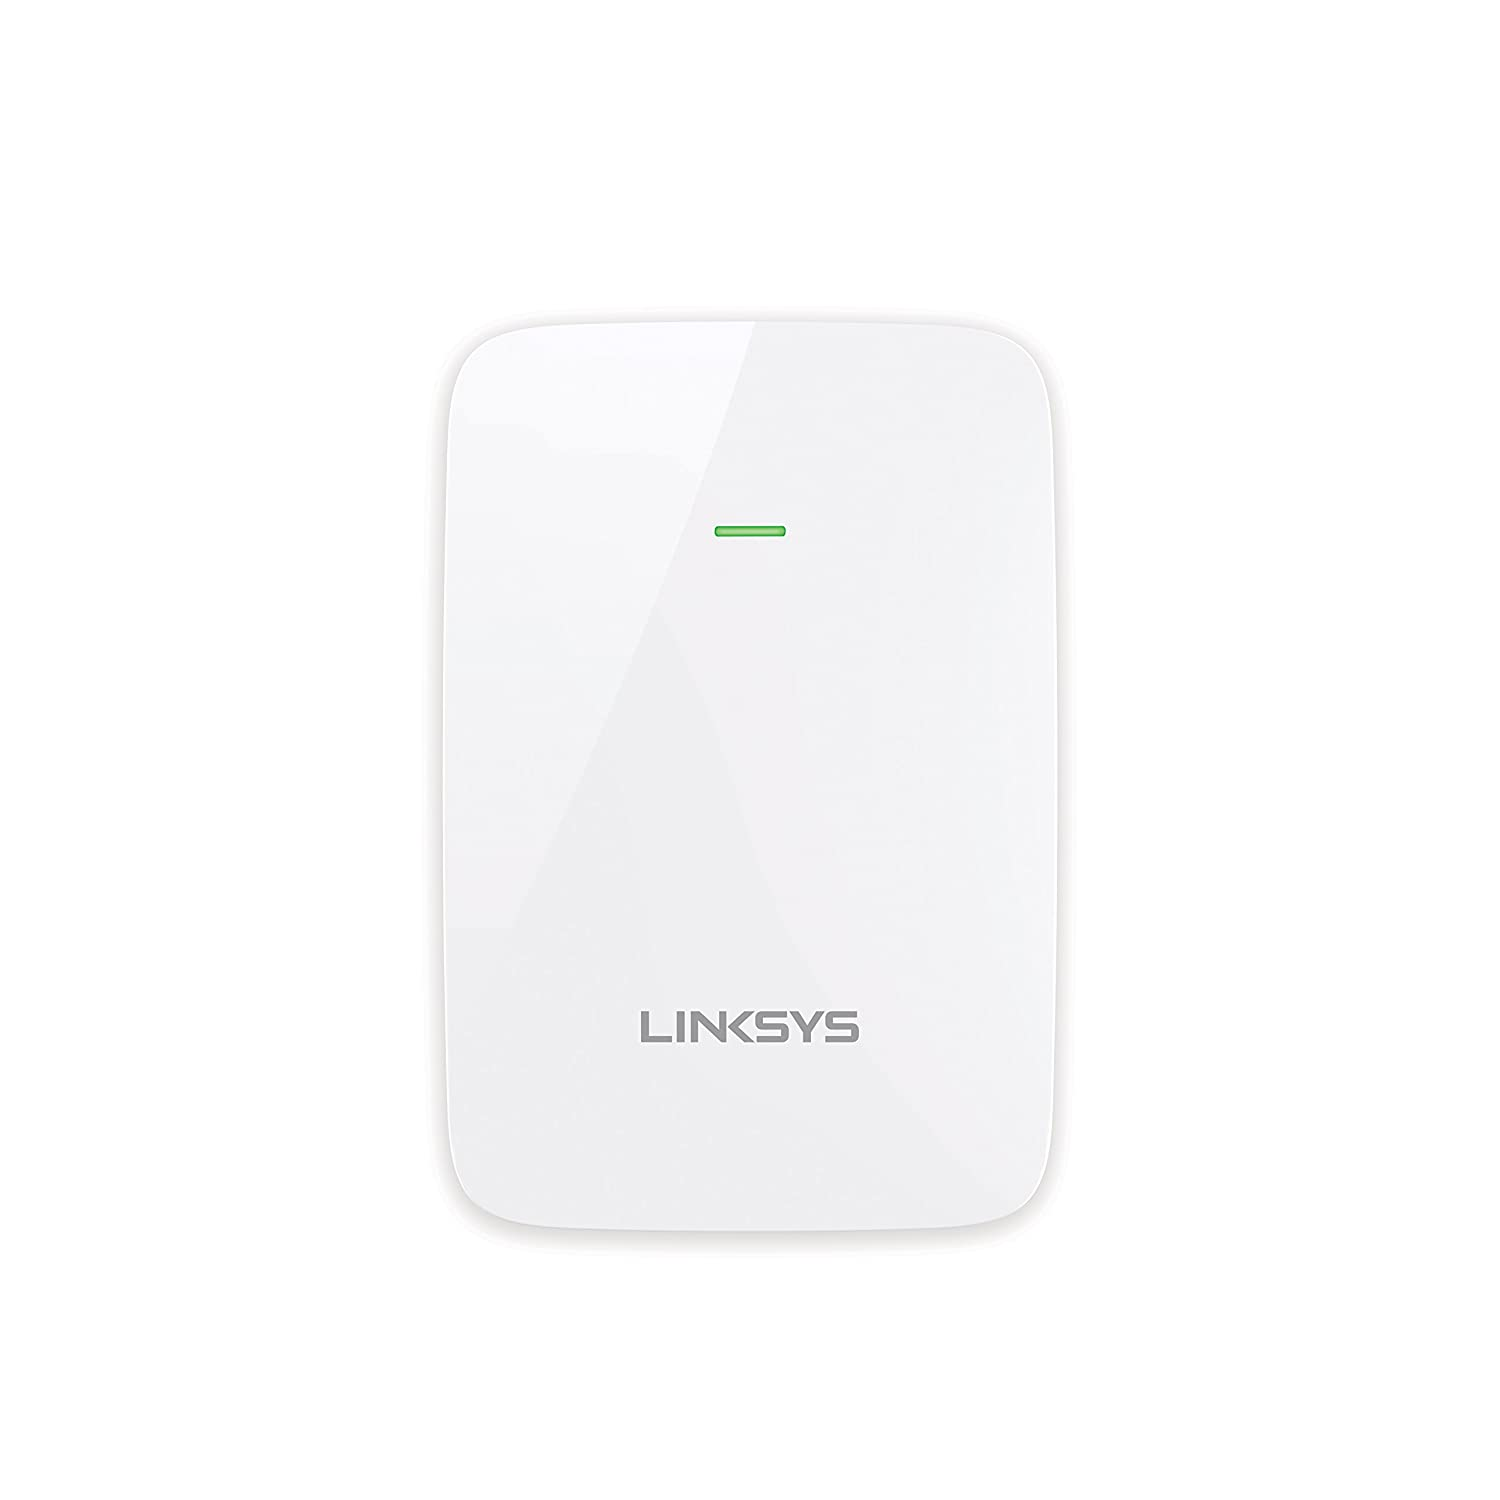 Linksys AC1200 Dual-Band Wi-Fi Range Extender / Wi-Fi Booster (RE6350)